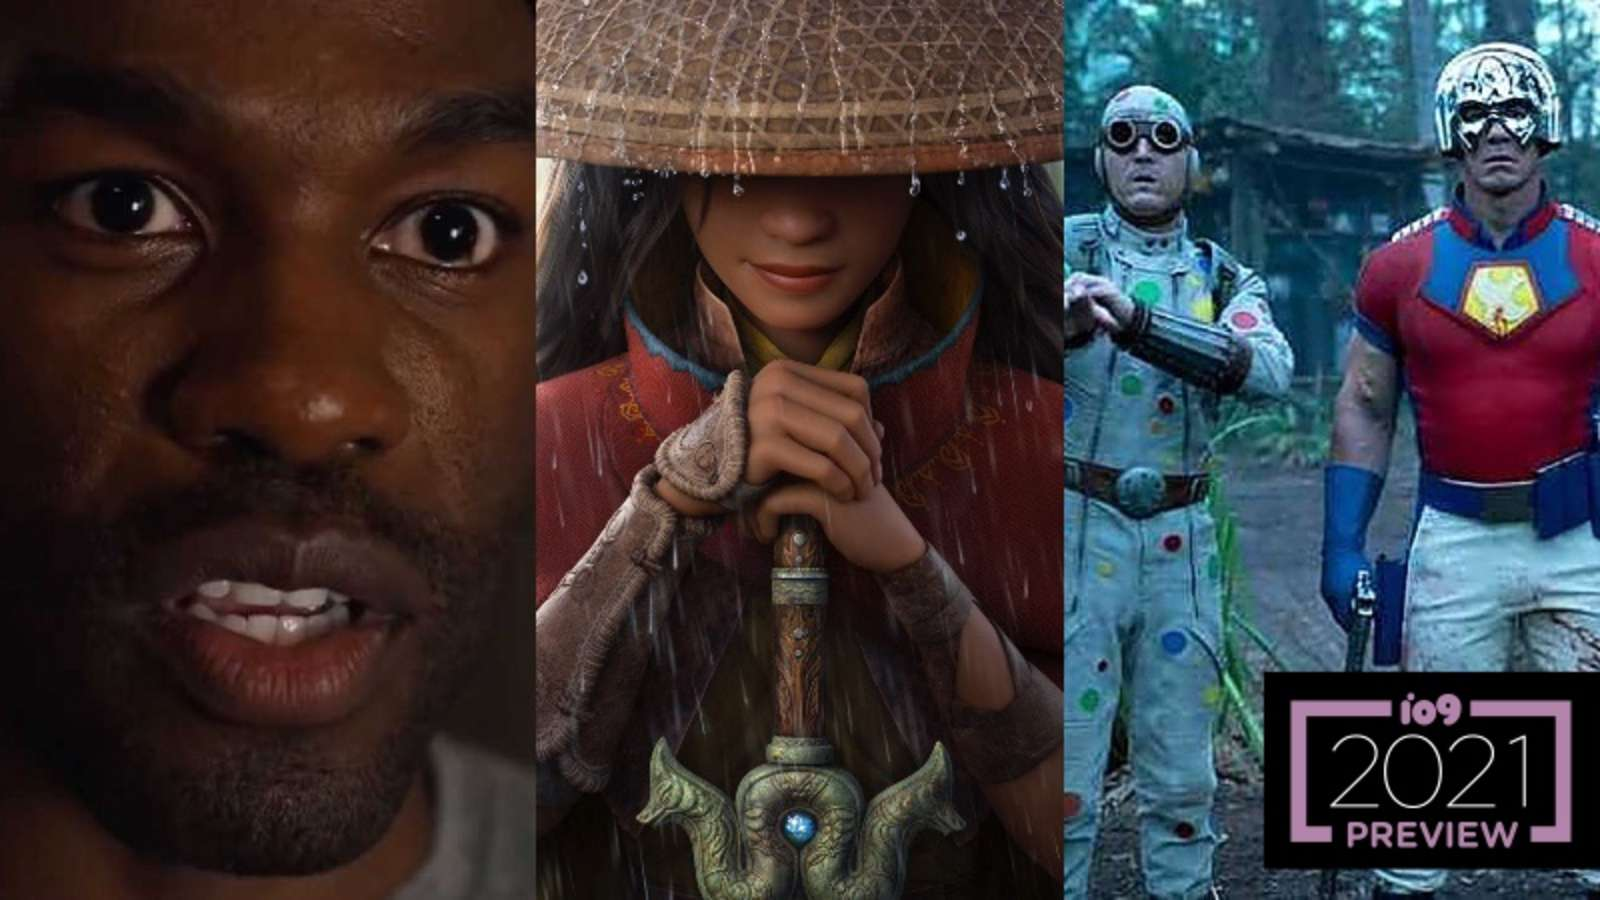 All the Sci-Fi, Fantasy, and Horror Films to Look Forward to in 2021...Hopefully